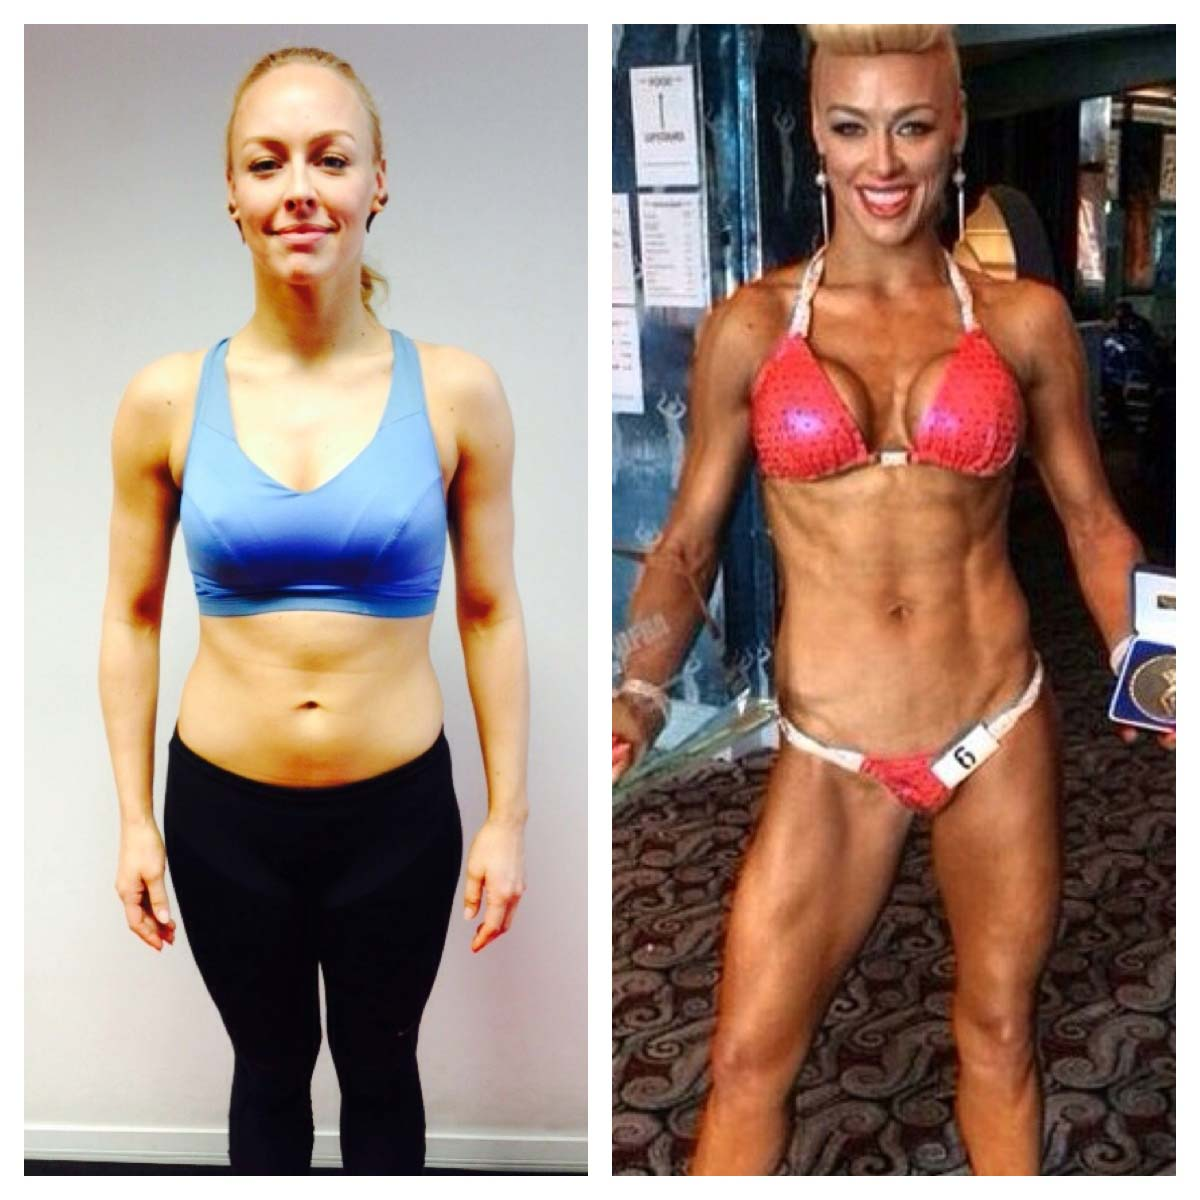 Image of Hayley SteeleUnited Kingdom UKDFBA Amateur Fit Body Champion before and after